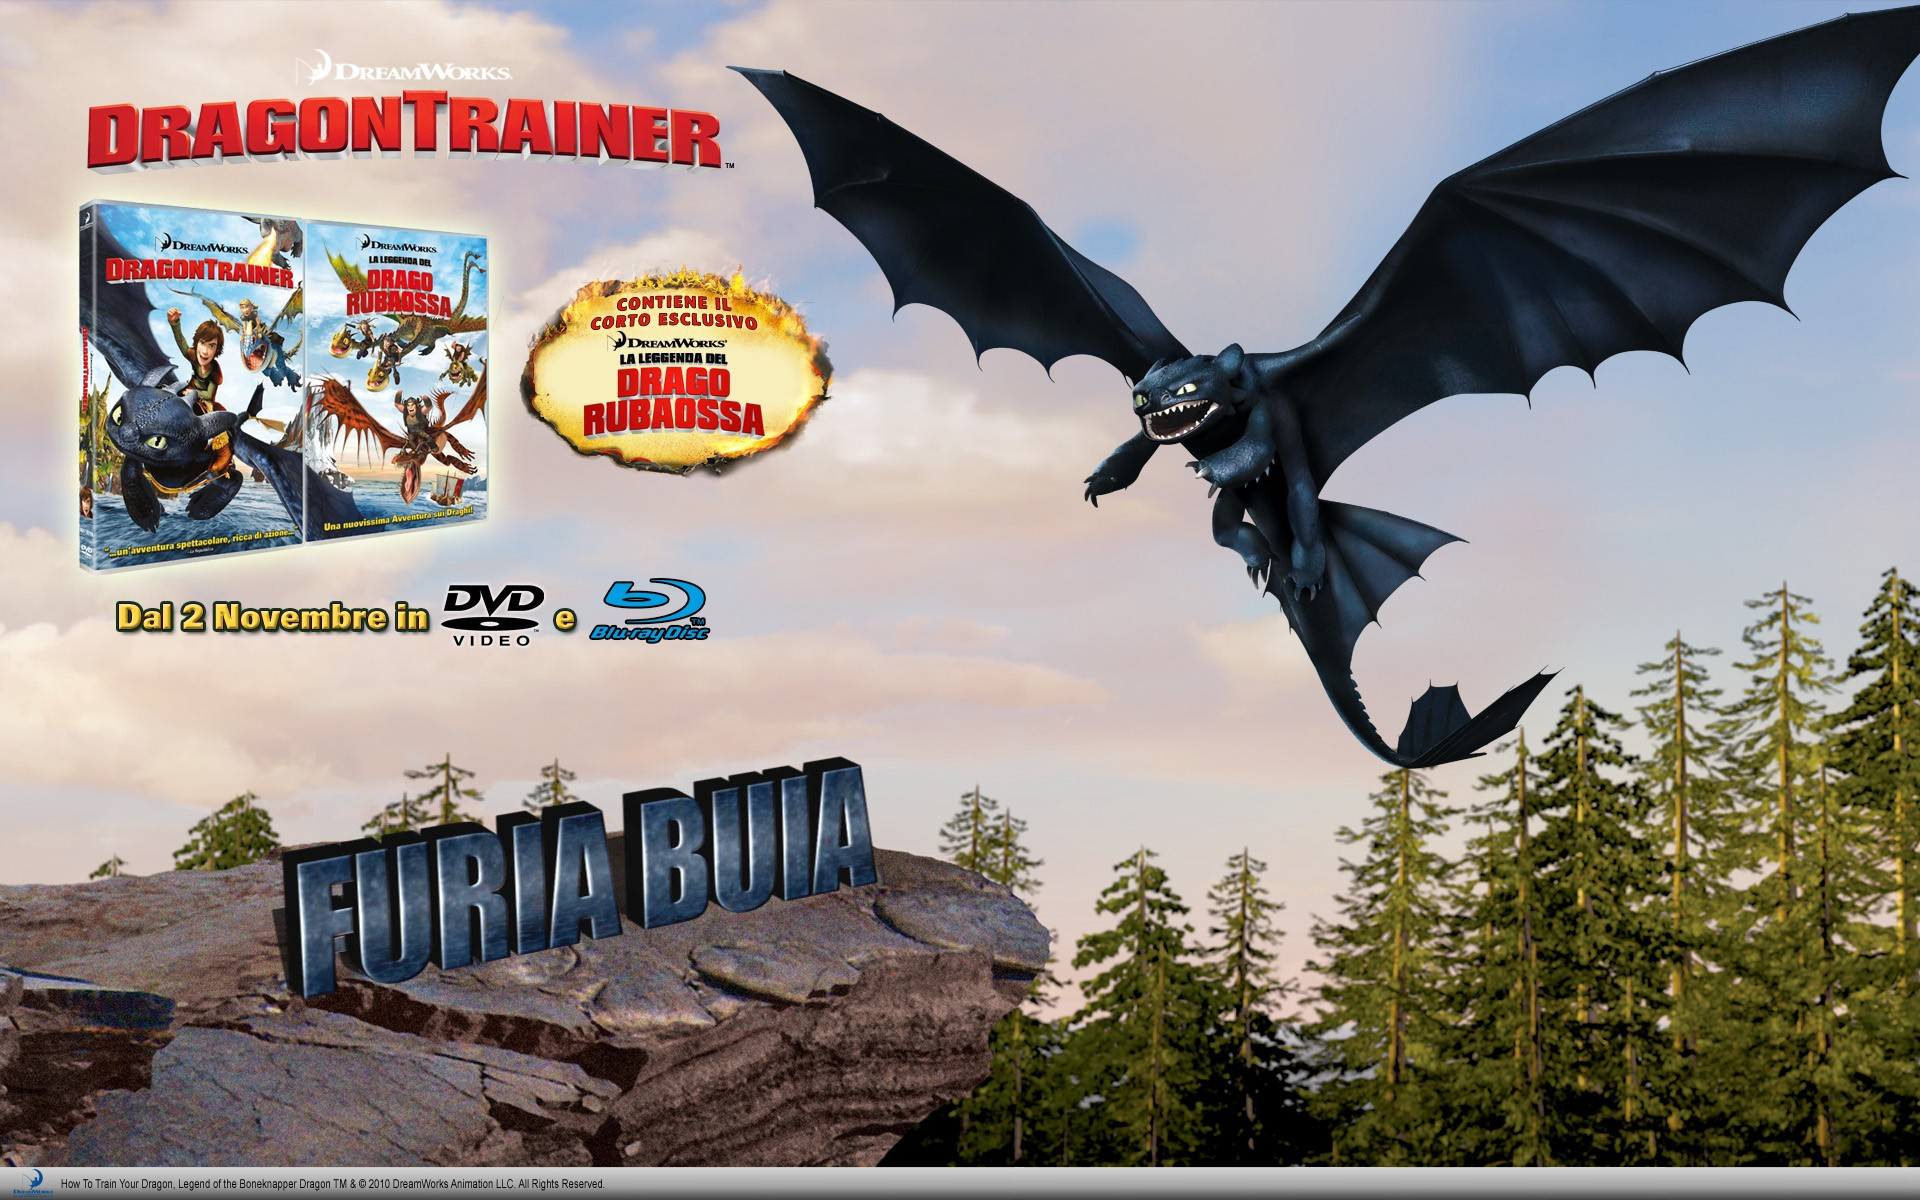 Un wallpaper dedicato all'uscita homevideo di Dragon Trainer